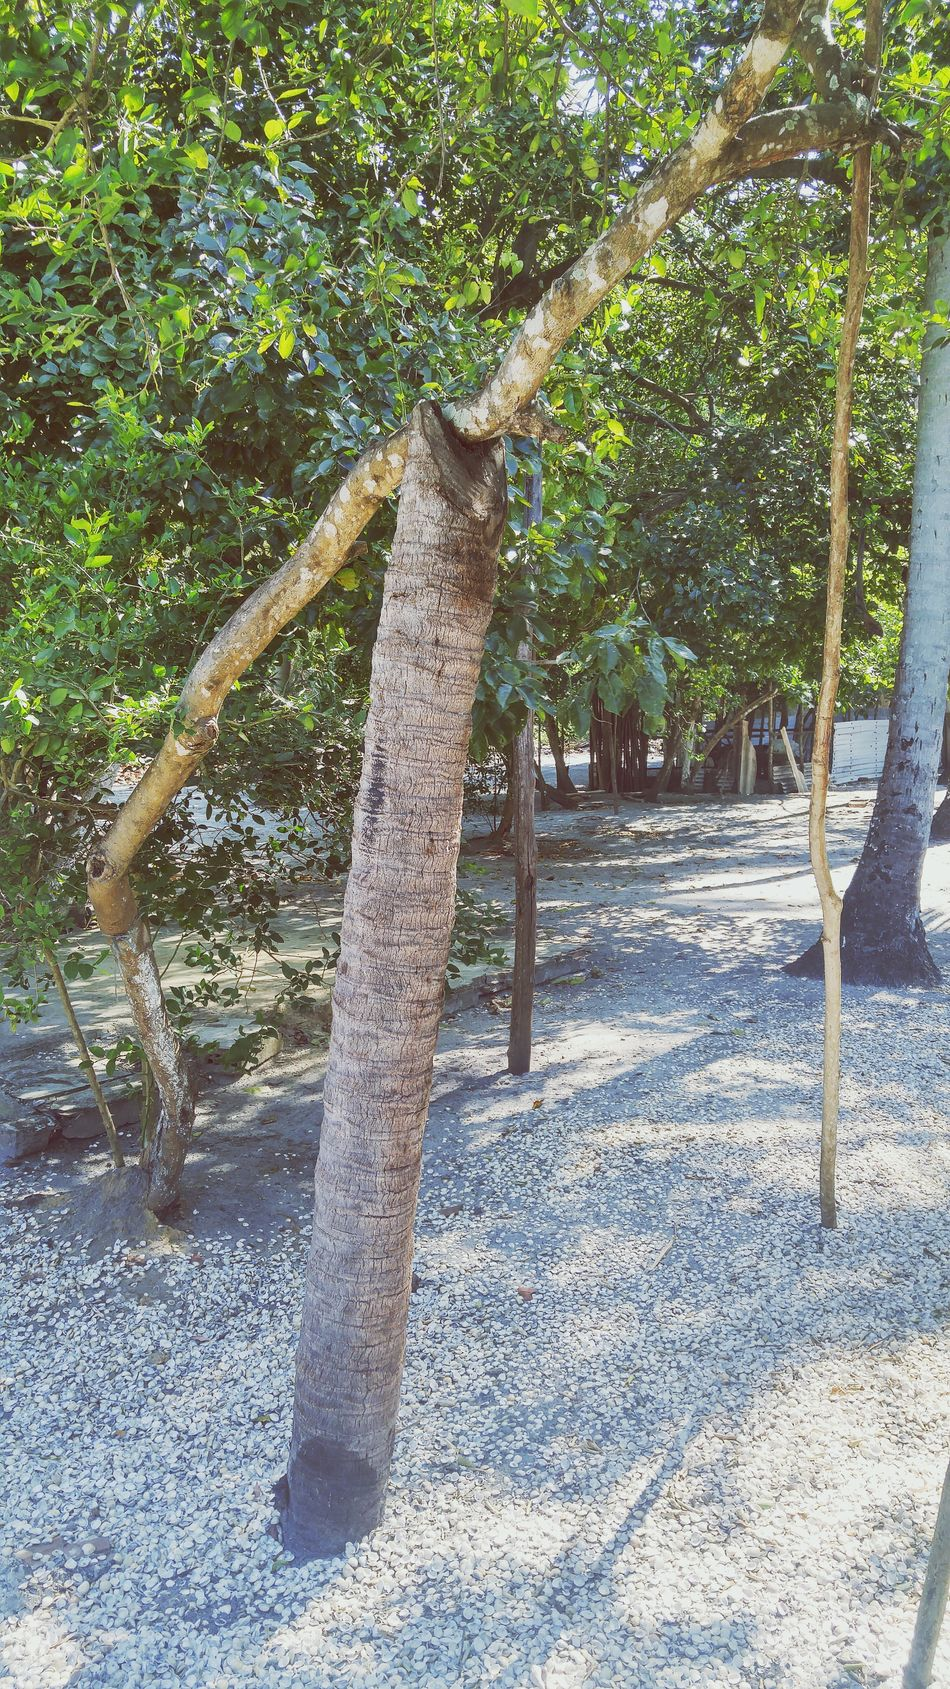 Tree Tree Trunk Growth Plant Green Color Park - Man Made Space Nature Tranquility Tranquil Scene Branch Outdoors Day Growing Solitude Beauty In Nature Park Summer Scenics No People Footpath